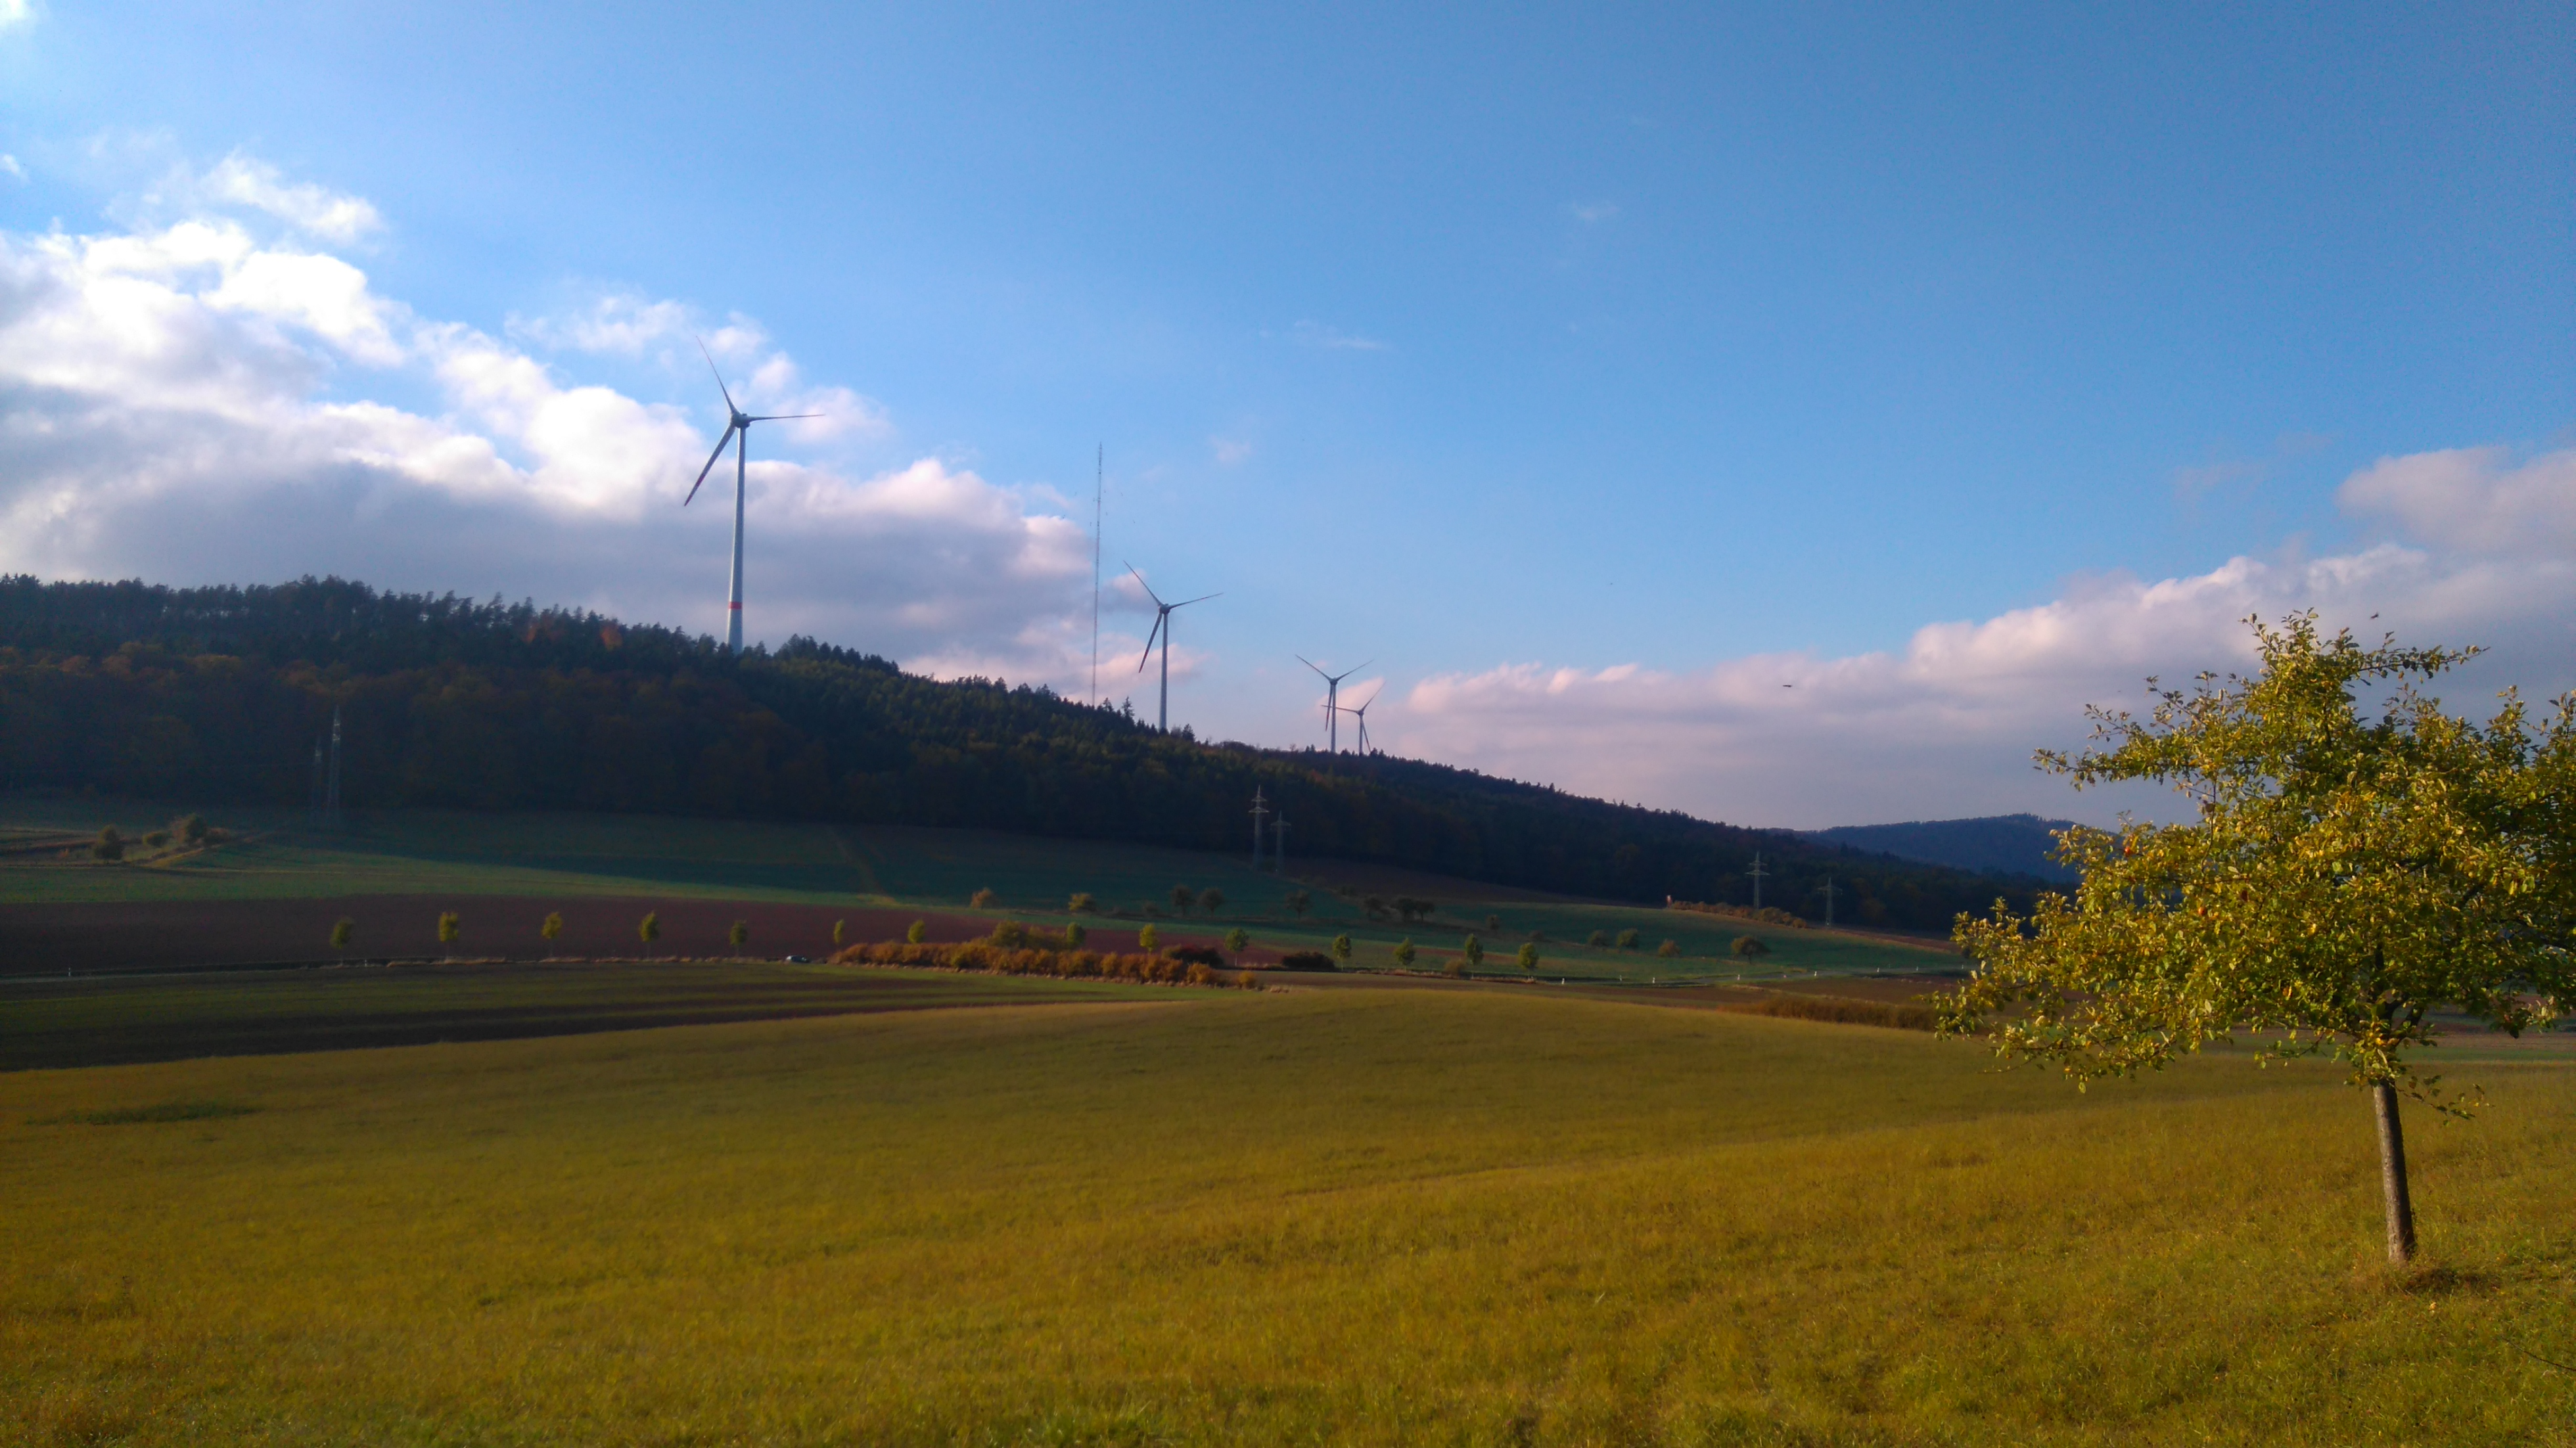 Wolfhagen boasts four windmills, a 42,000-panel solar farm and two biogas facilities that turn waste into energy.